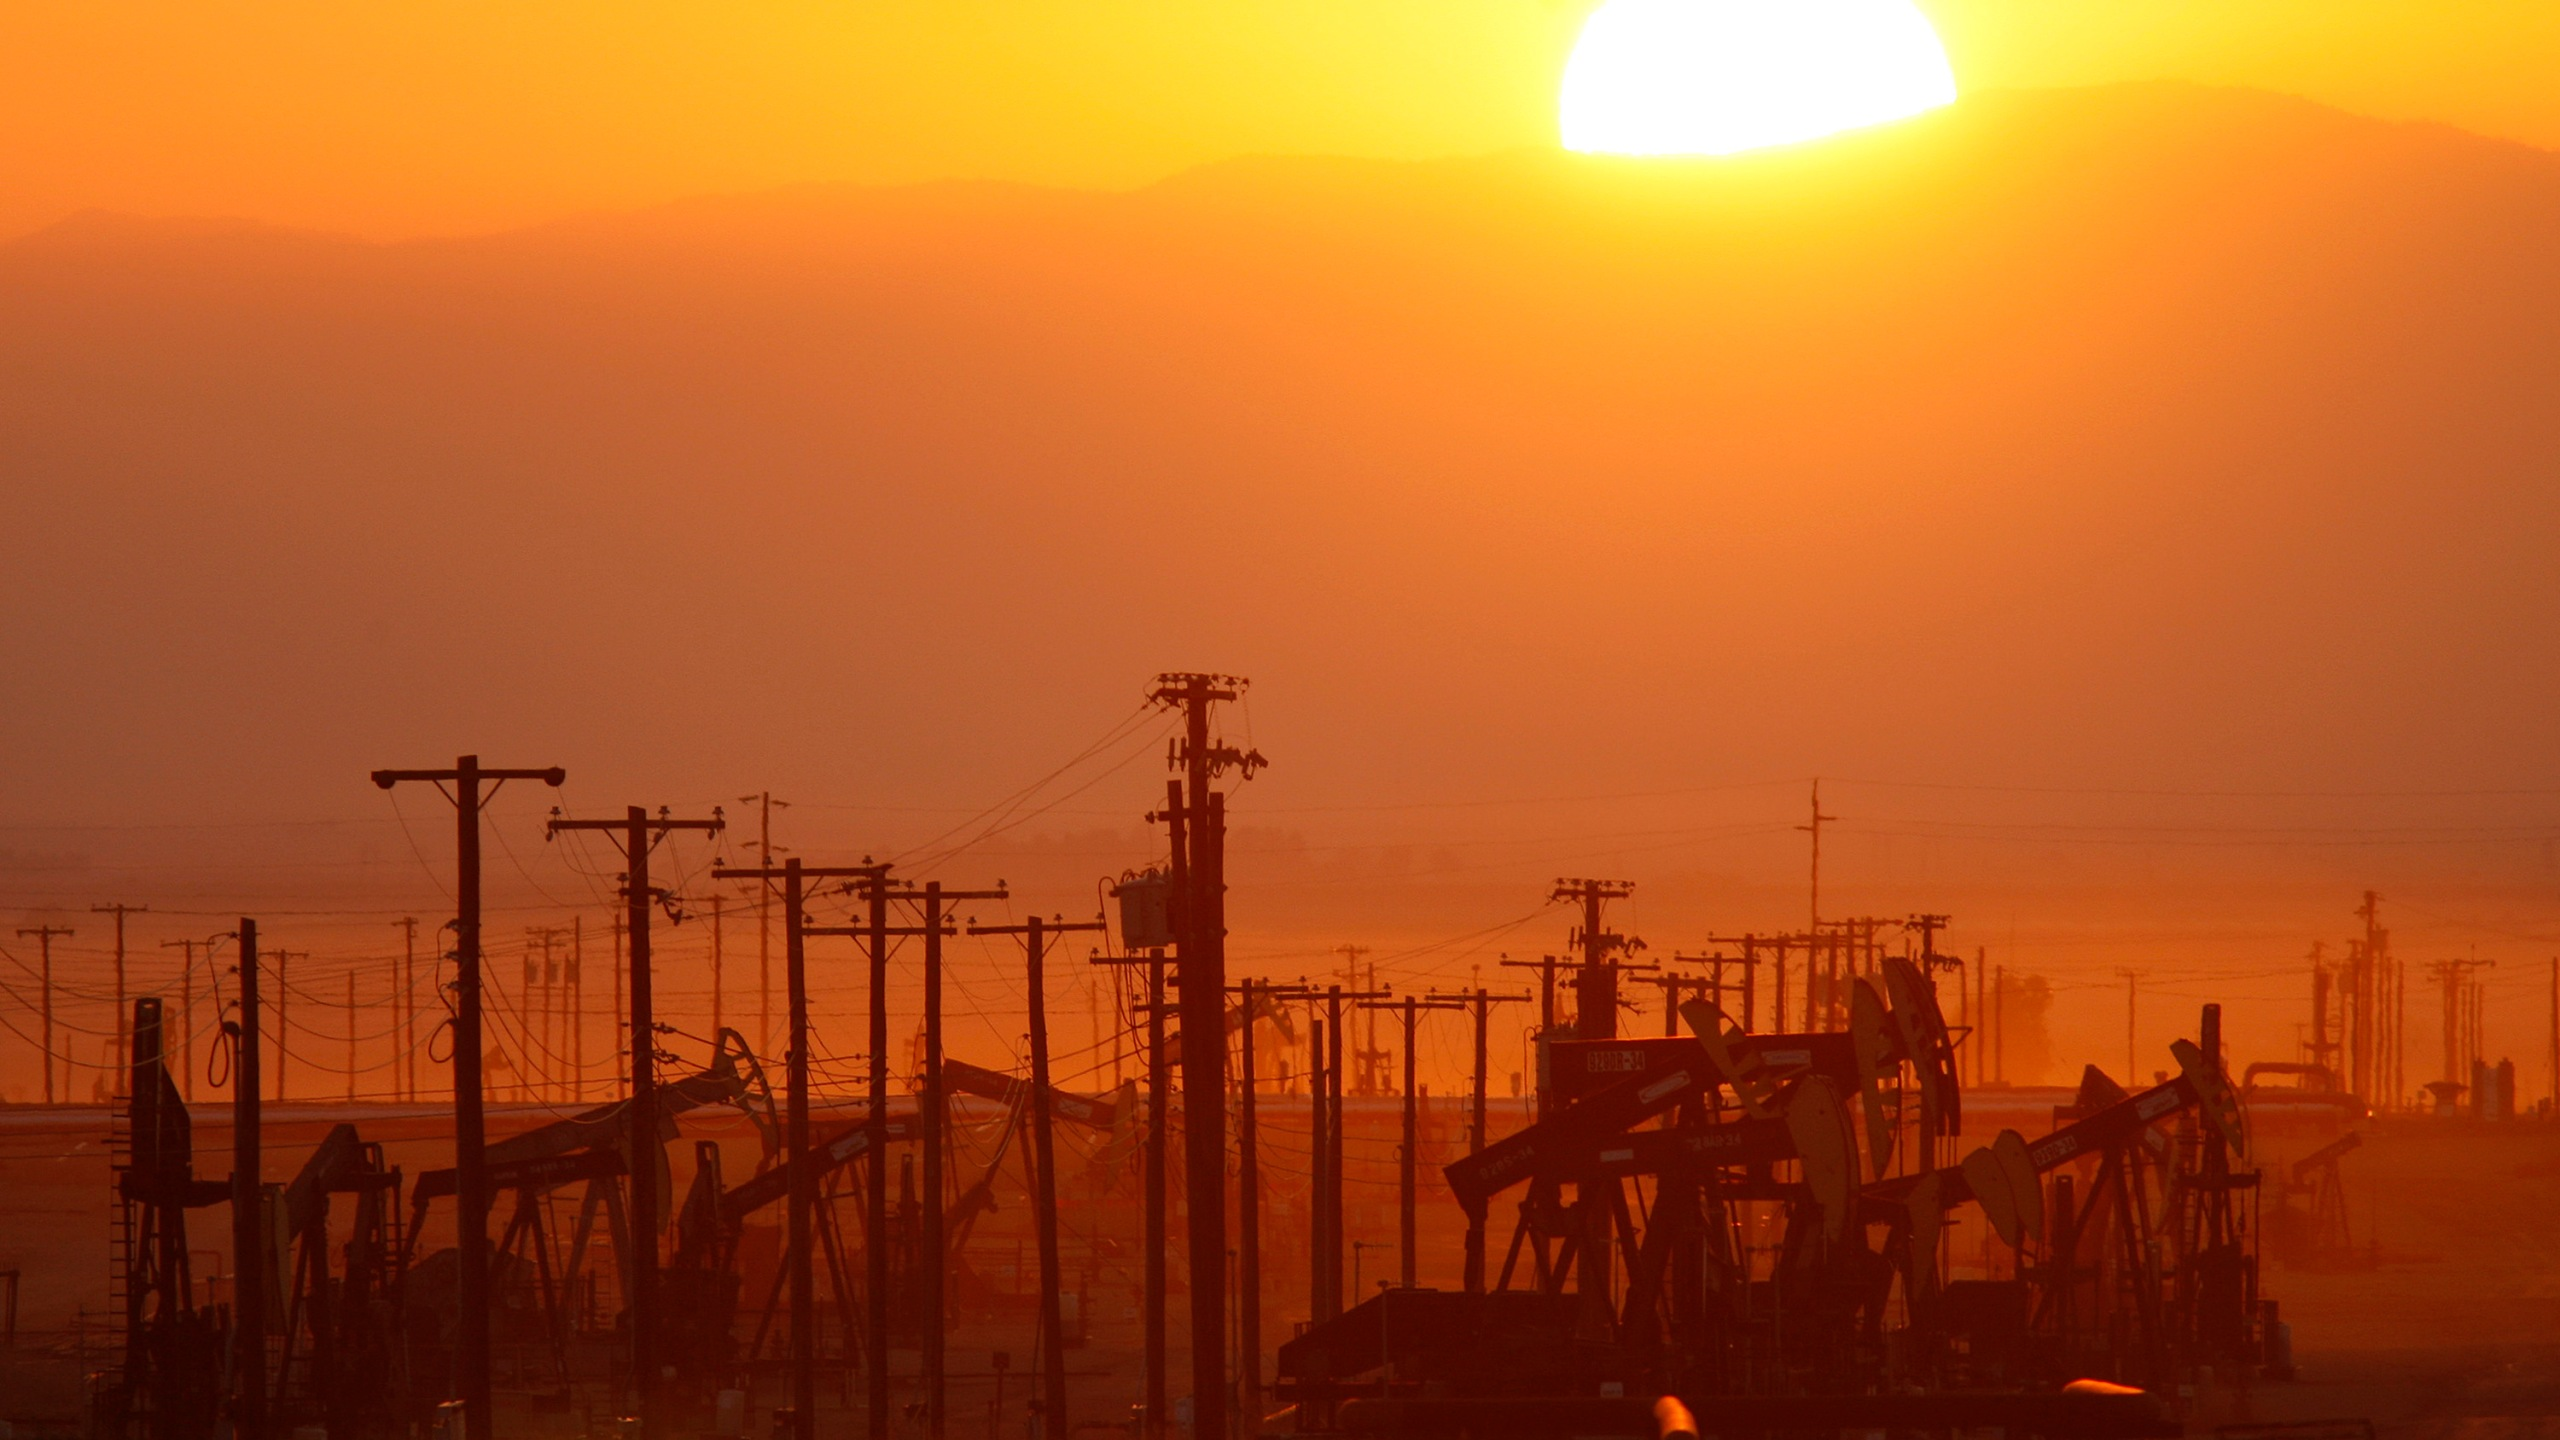 The sun rises over an oil field at the Monterey Shale formation on March 24, 2014, near Lost Hills, California. (Credit: David McNew/Getty Images)